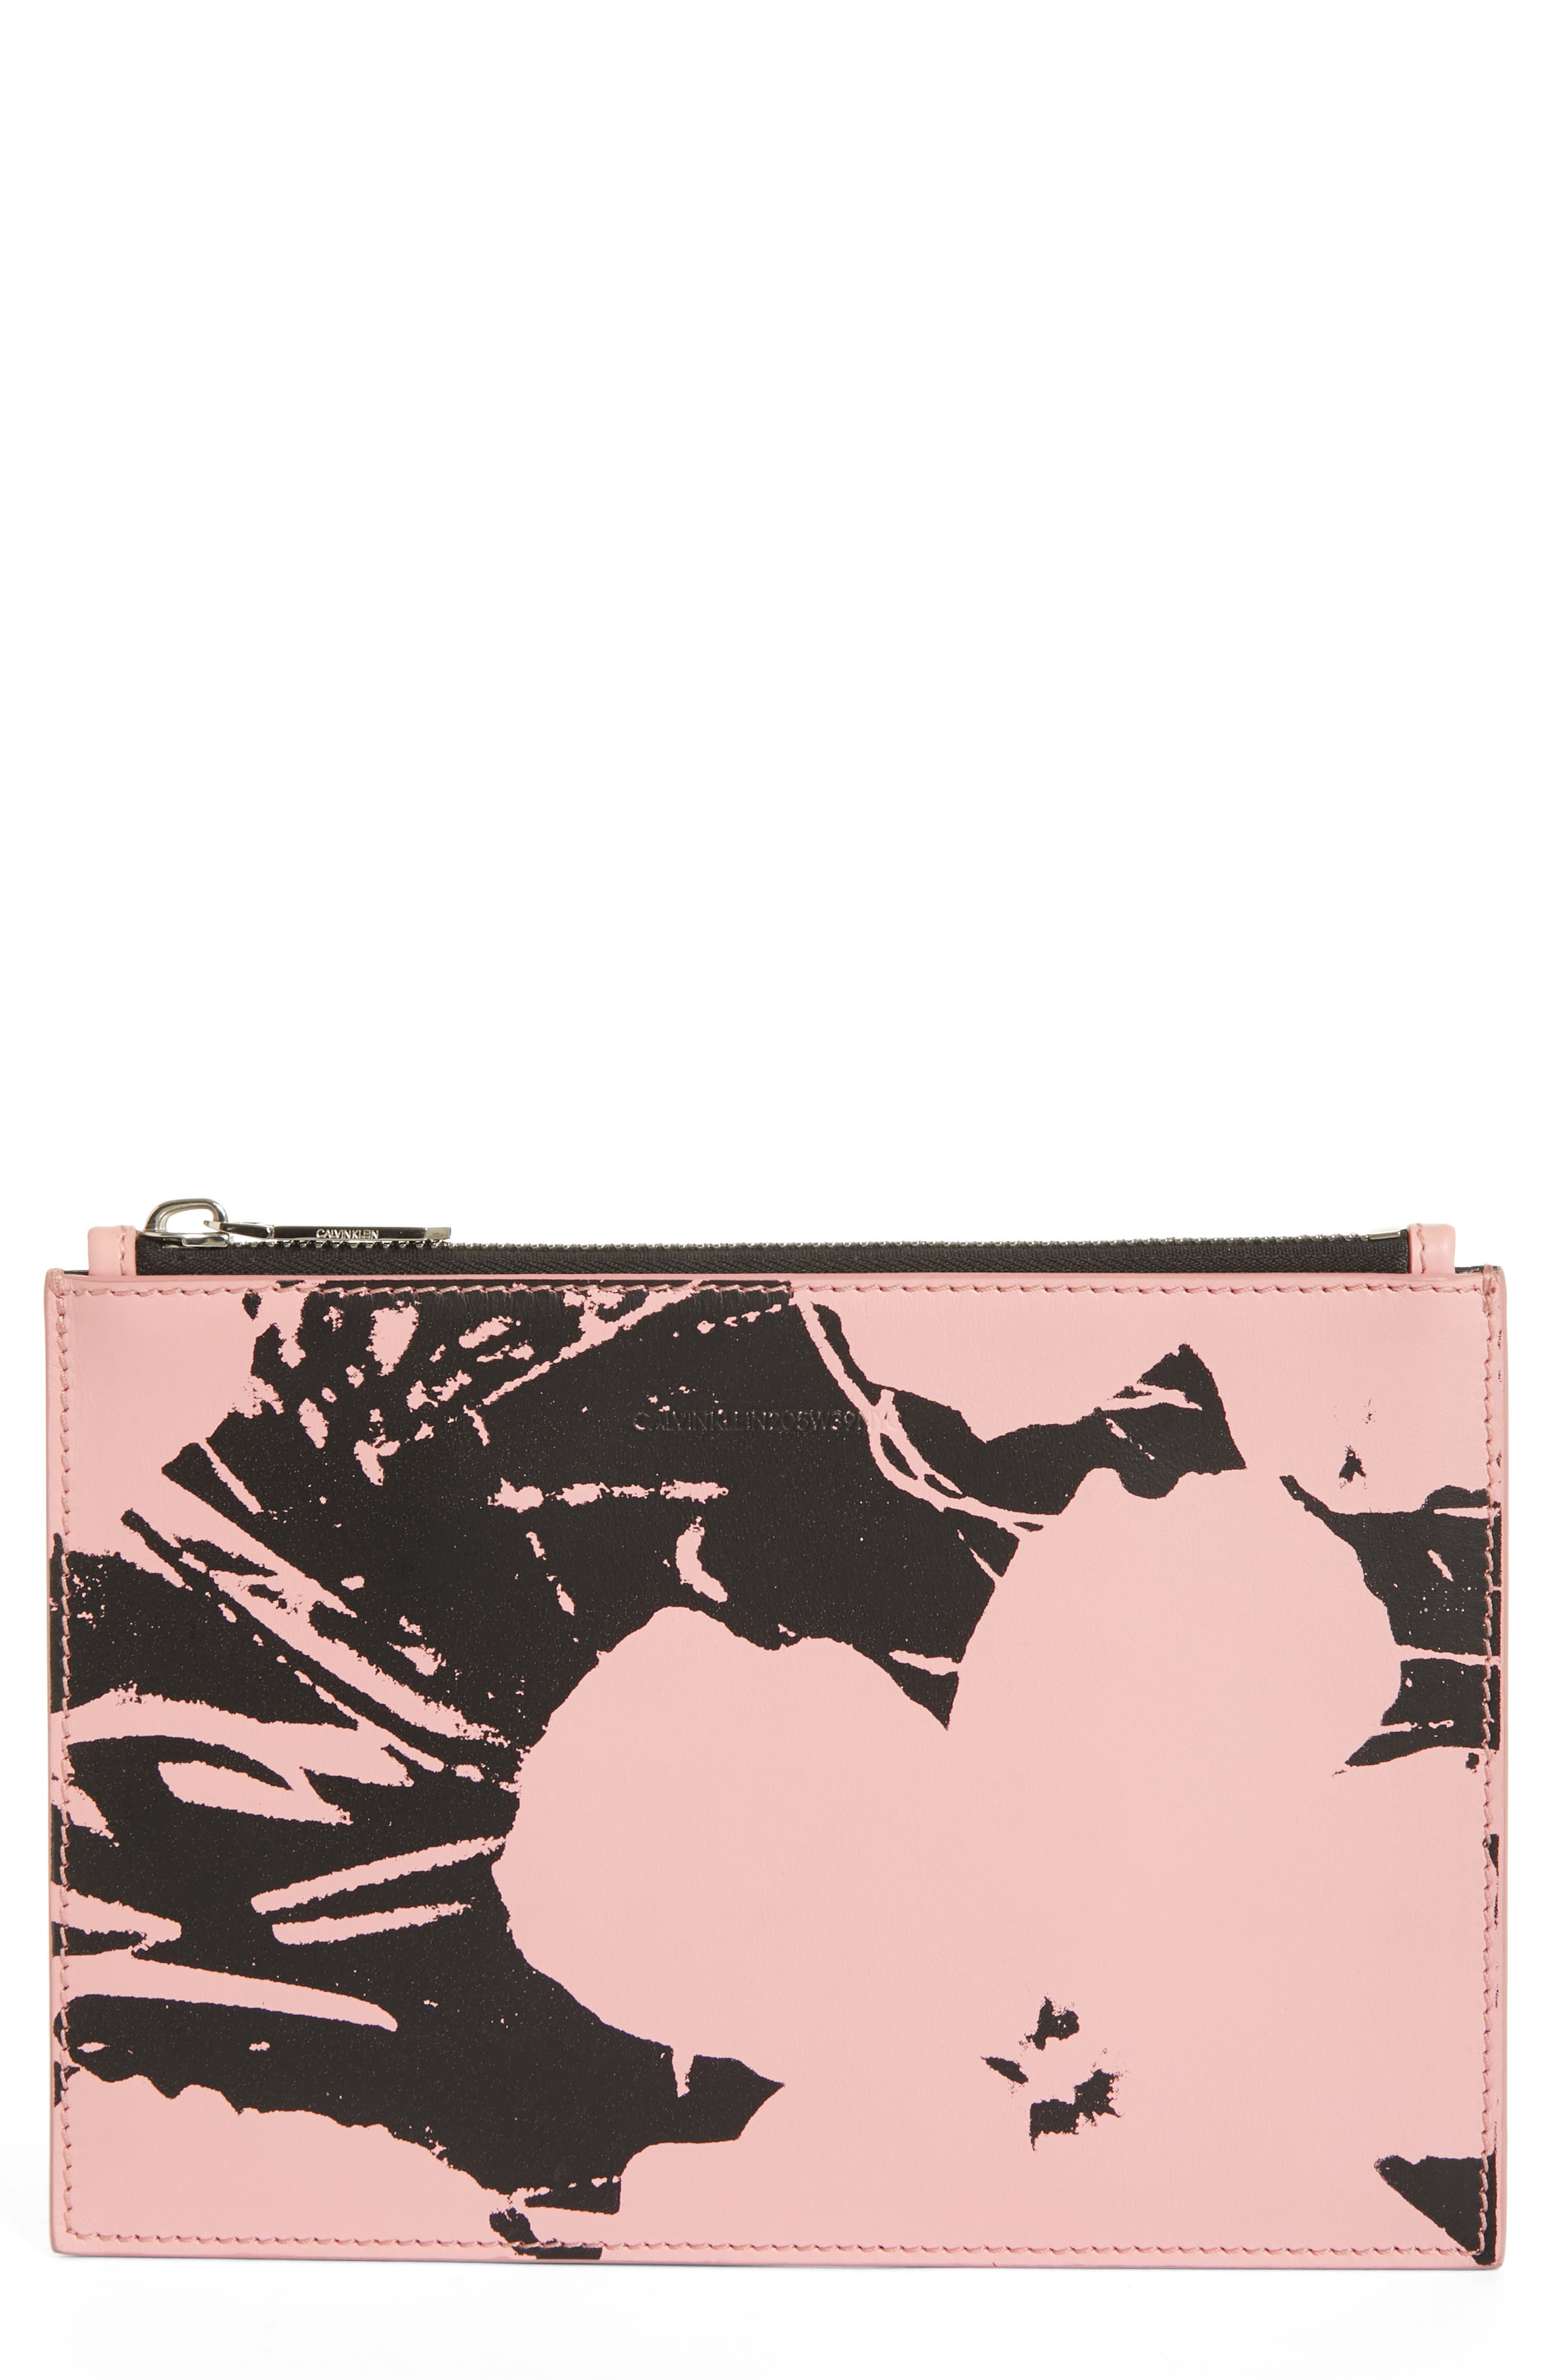 x Andy Warhol Foundation Flowers Leather Pouch,                         Main,                         color, PINK/ BLACK